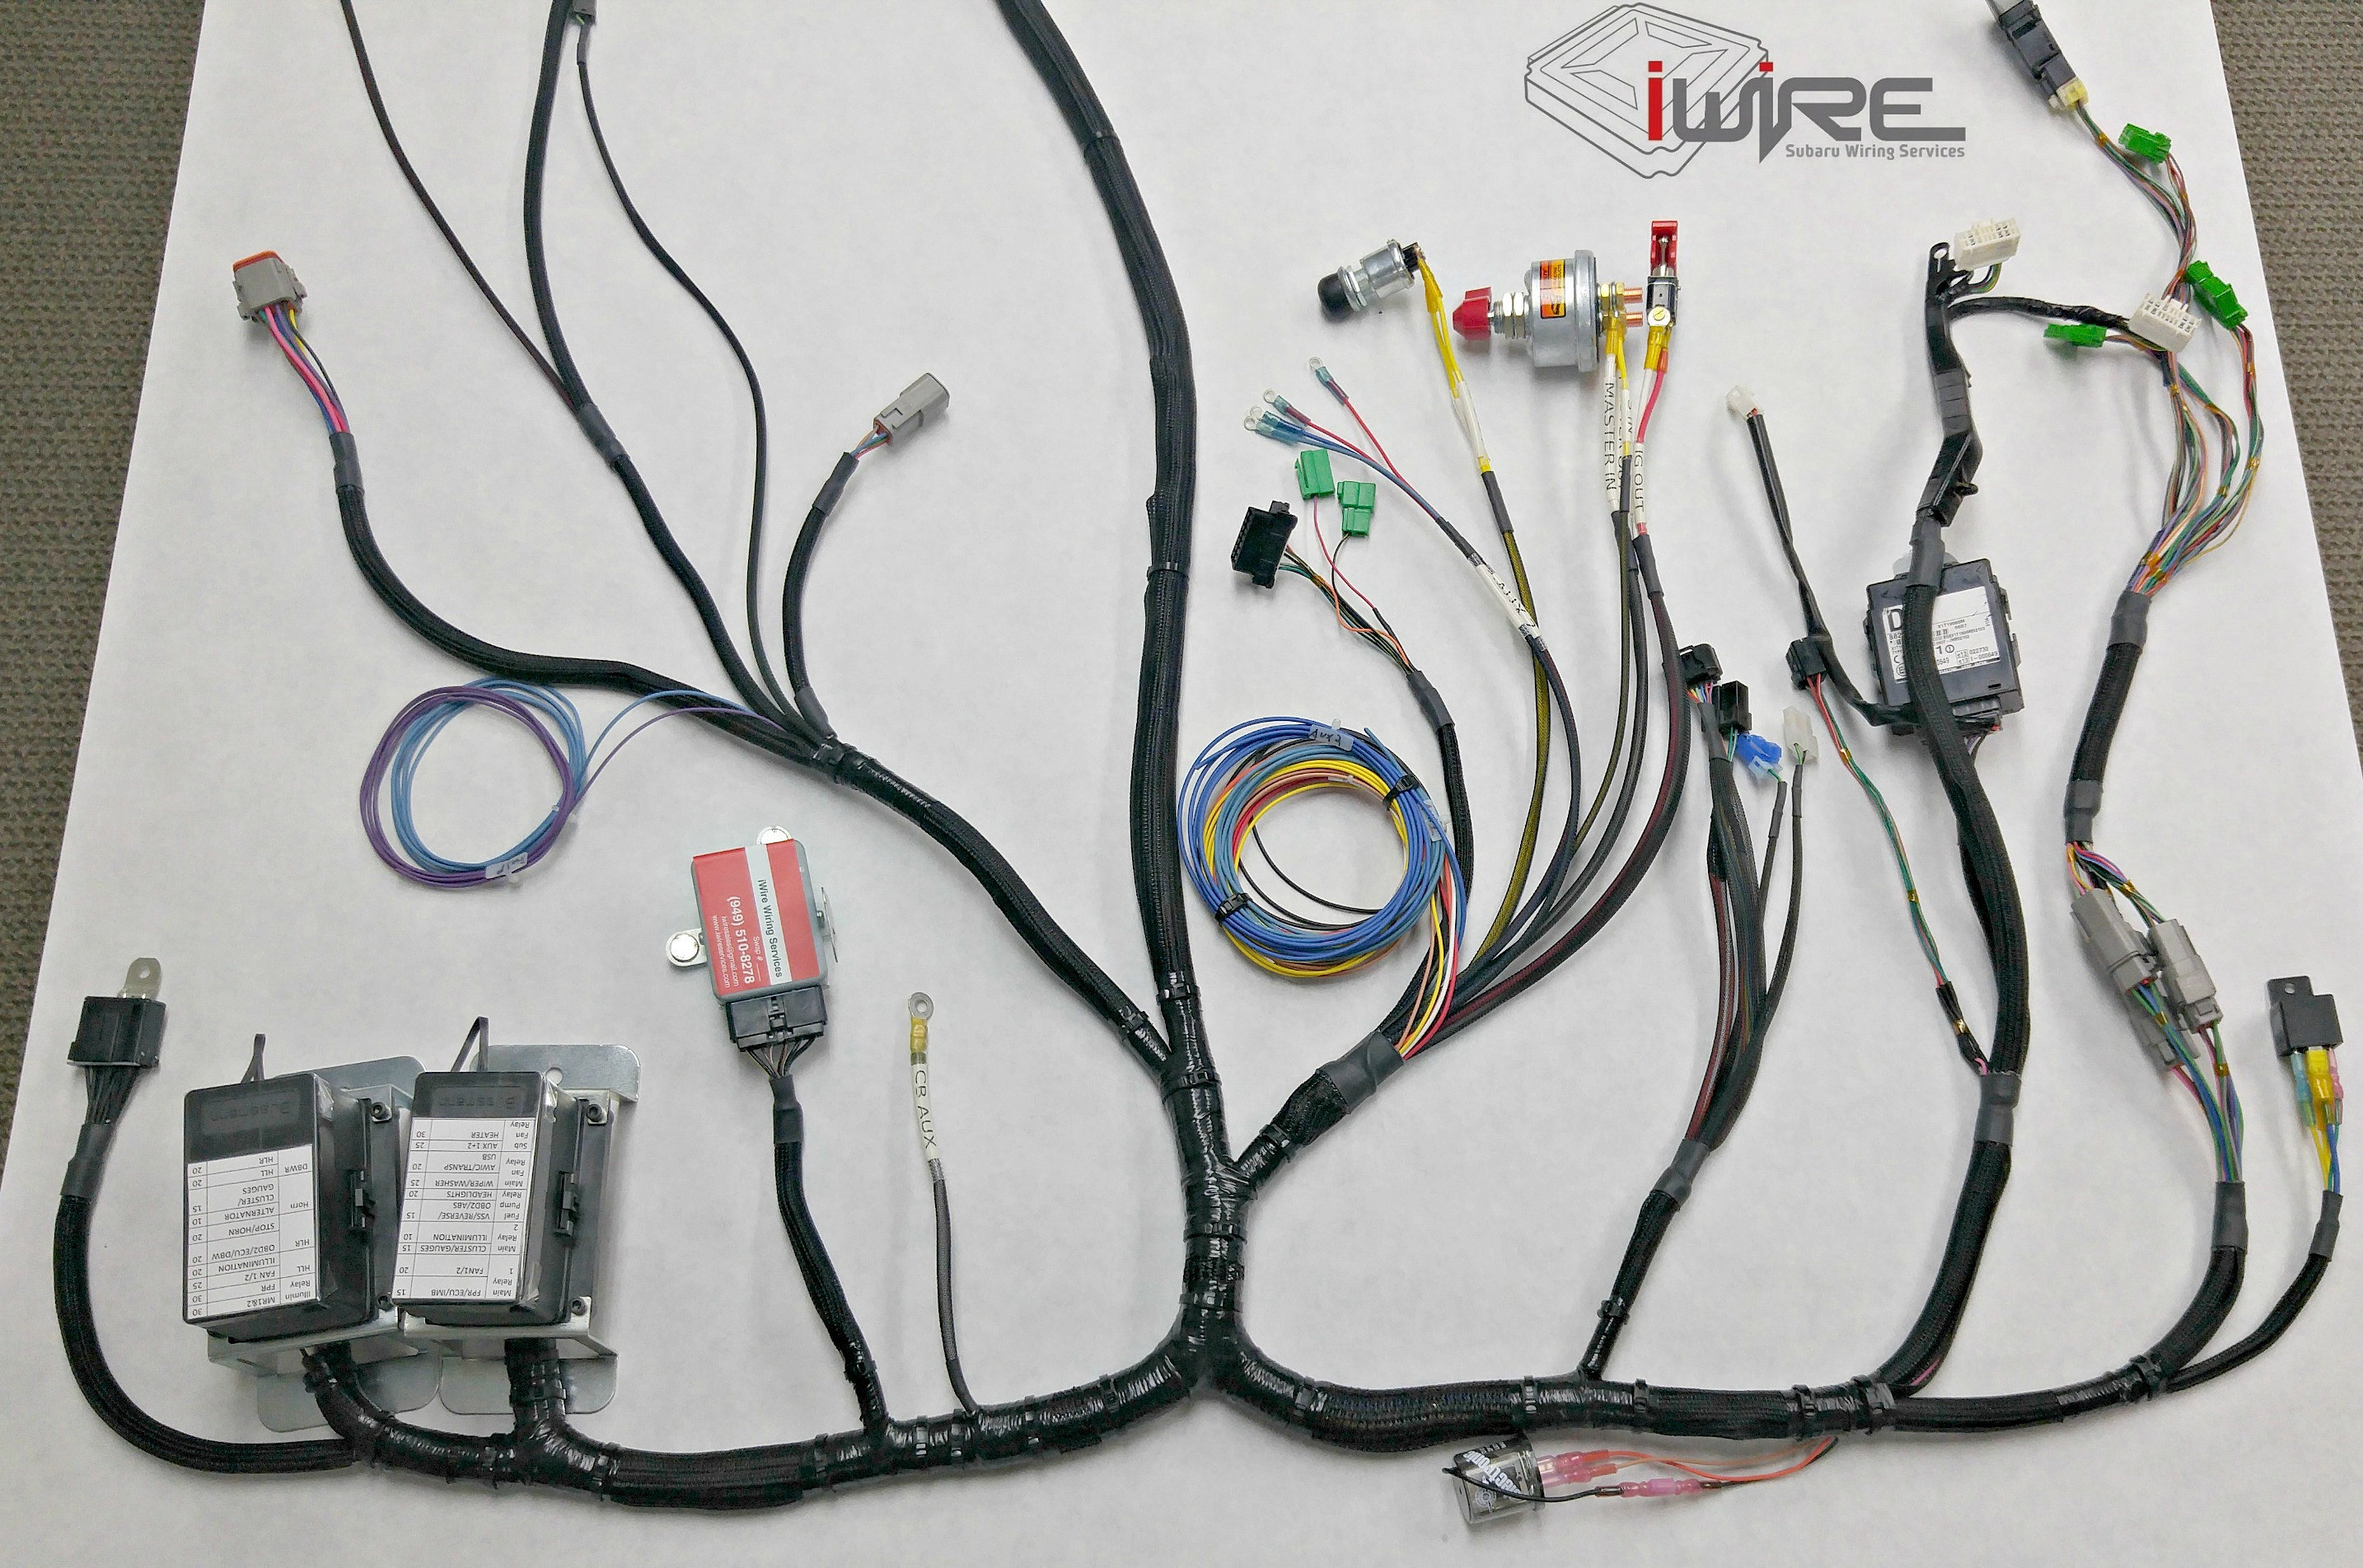 Subaru Wiring Harnesses And Adapters Iwire Services Ecu Harness Adapter Bulkhead Underdash